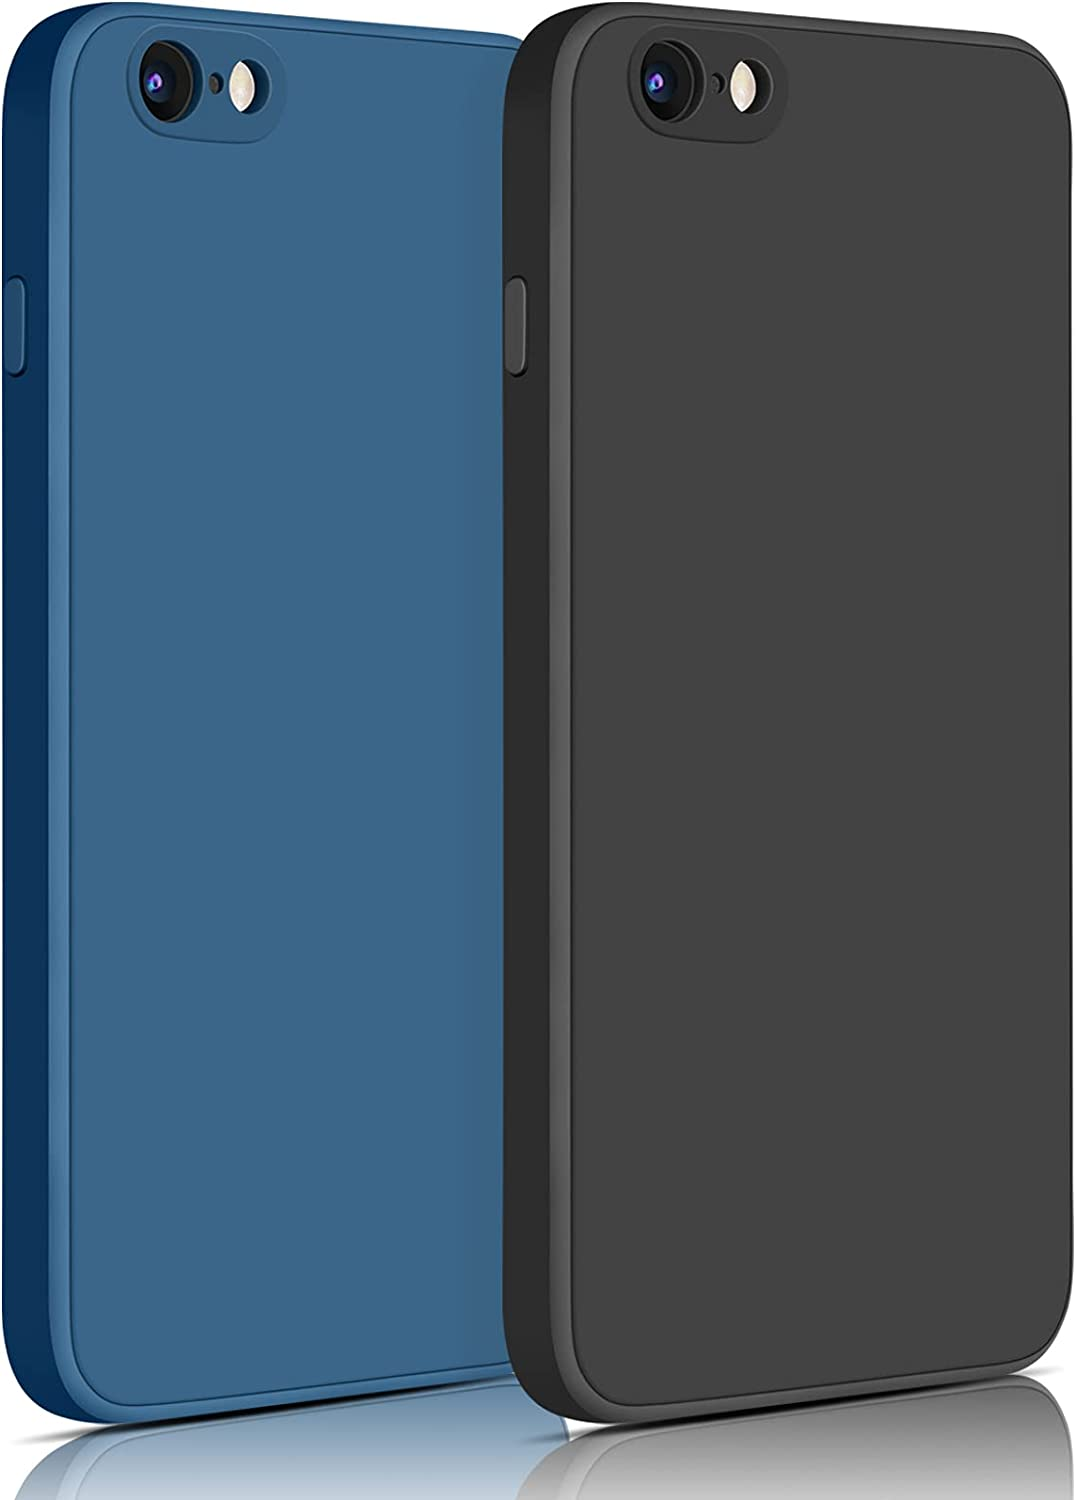 YILED 2 Pack Compatible with iPhone 6 / iPhone 6s Case,Silicone Slim Shockproof Phone Case for iPhone 6/6s,Soft Microfiber Lining,4.7 inch (03 Black+Navy Blue)